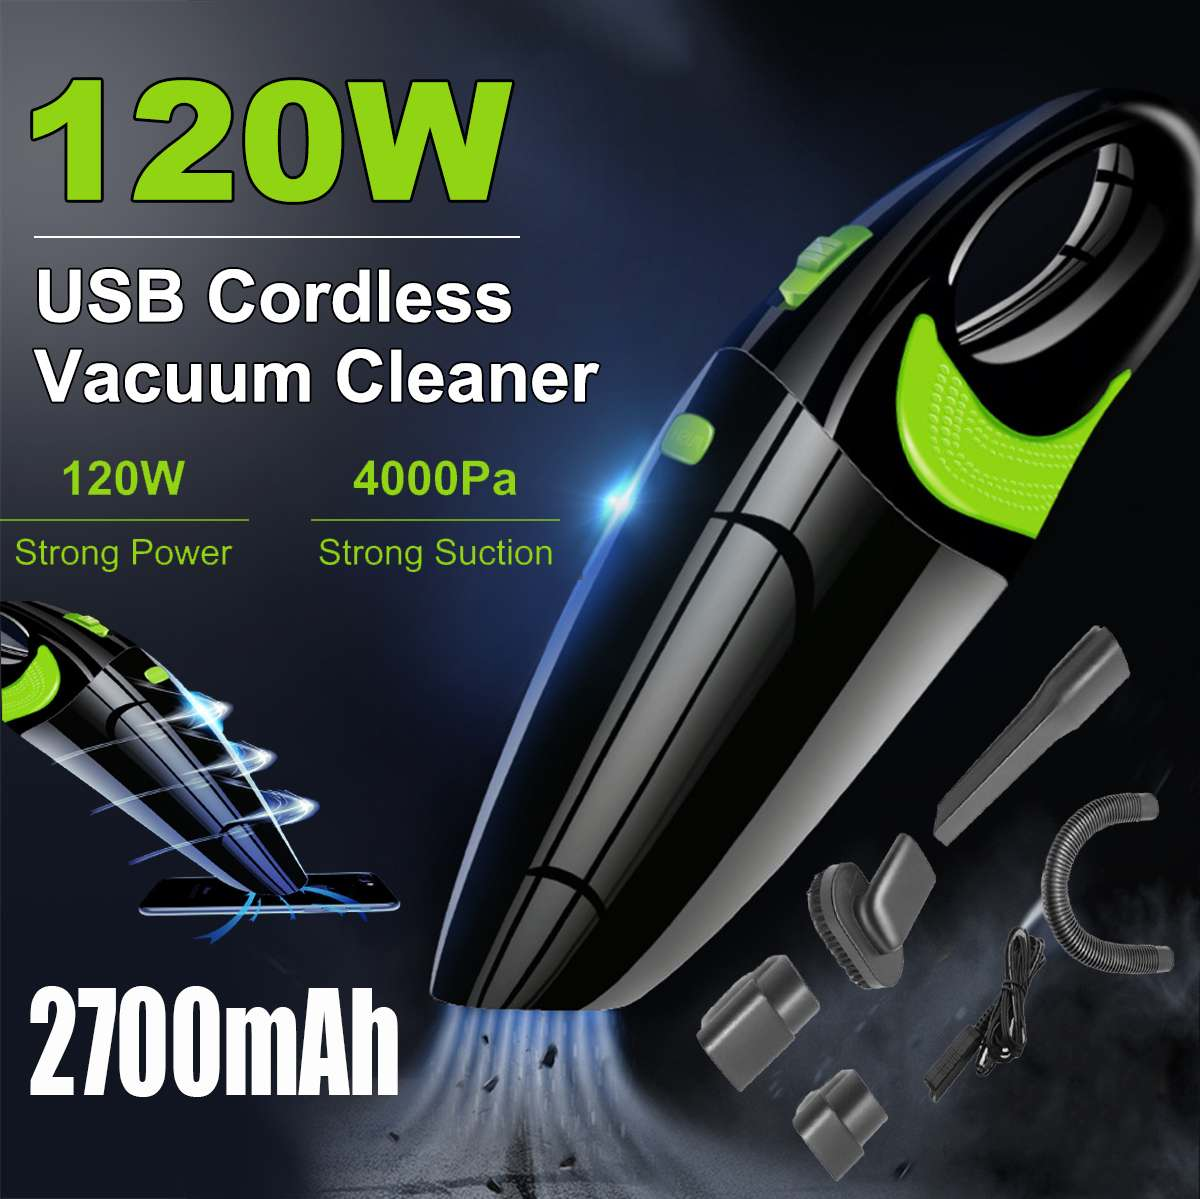 Powerful Wireless Car Vacuum Cleaner Portable Handheld 120W USB Cordless Wet&Dry Use Rechargeable Home Car Vacuum Cleaner